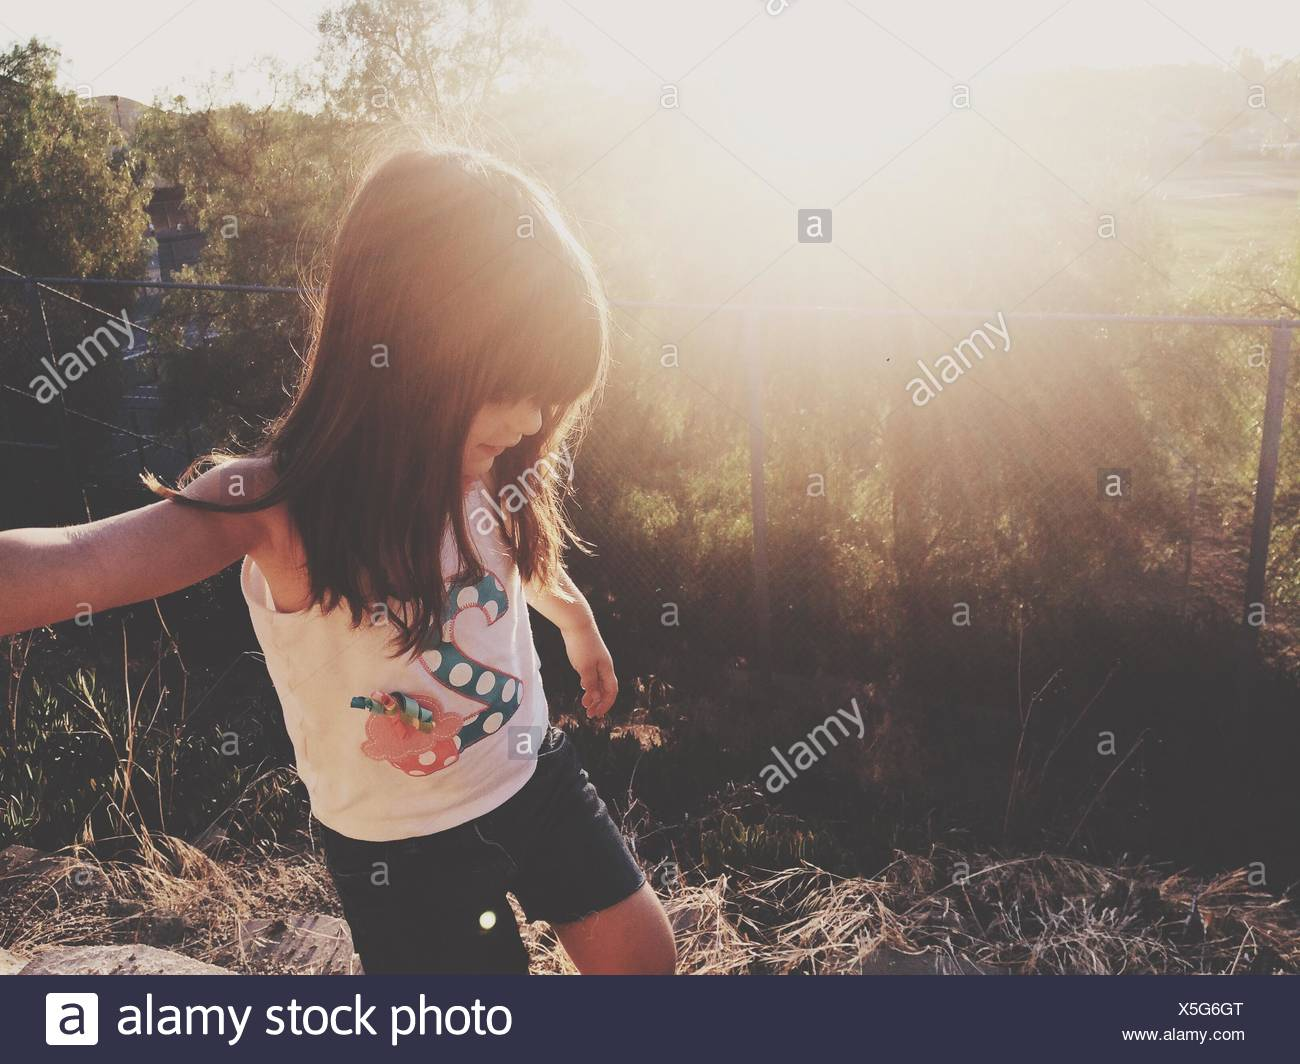 Girl Looking Down On Field - Stock Image